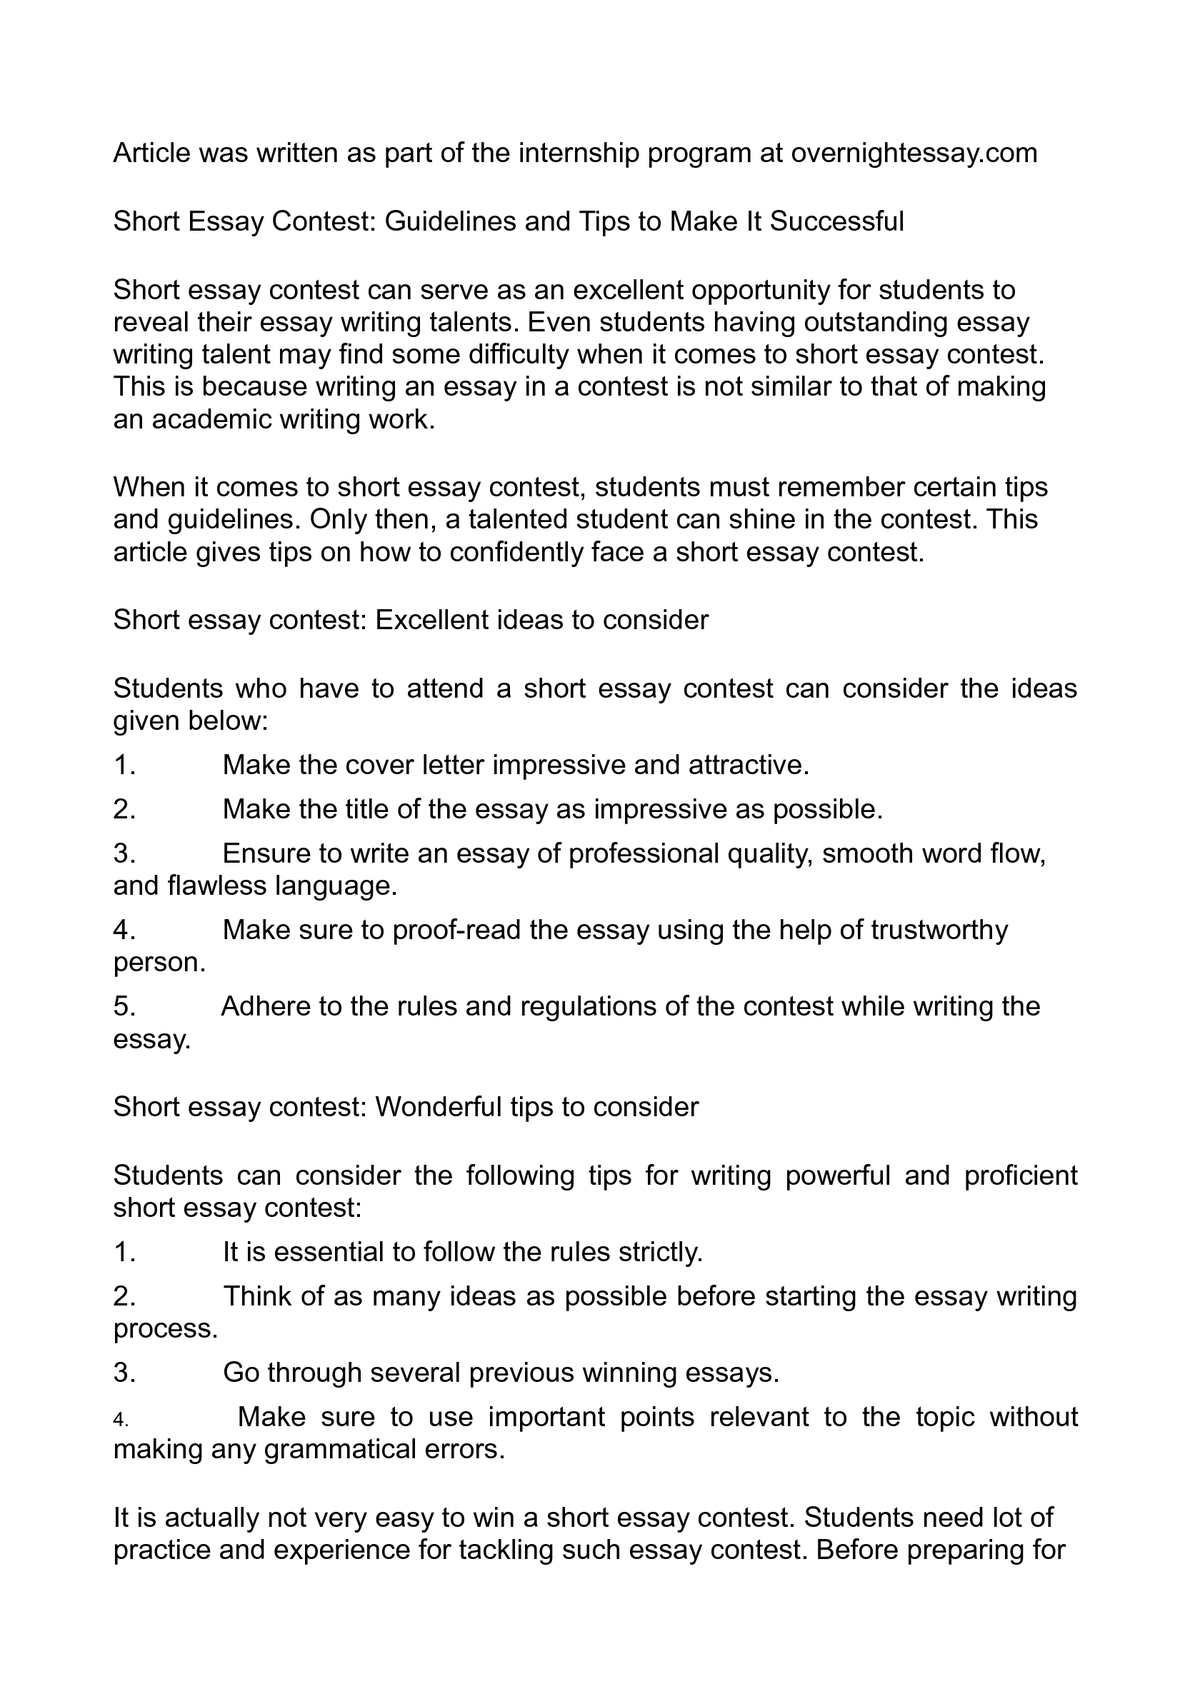 005 Essay Example Short Essays Impressive Examples For Primary School Narrative To Read Small In Spanish Full